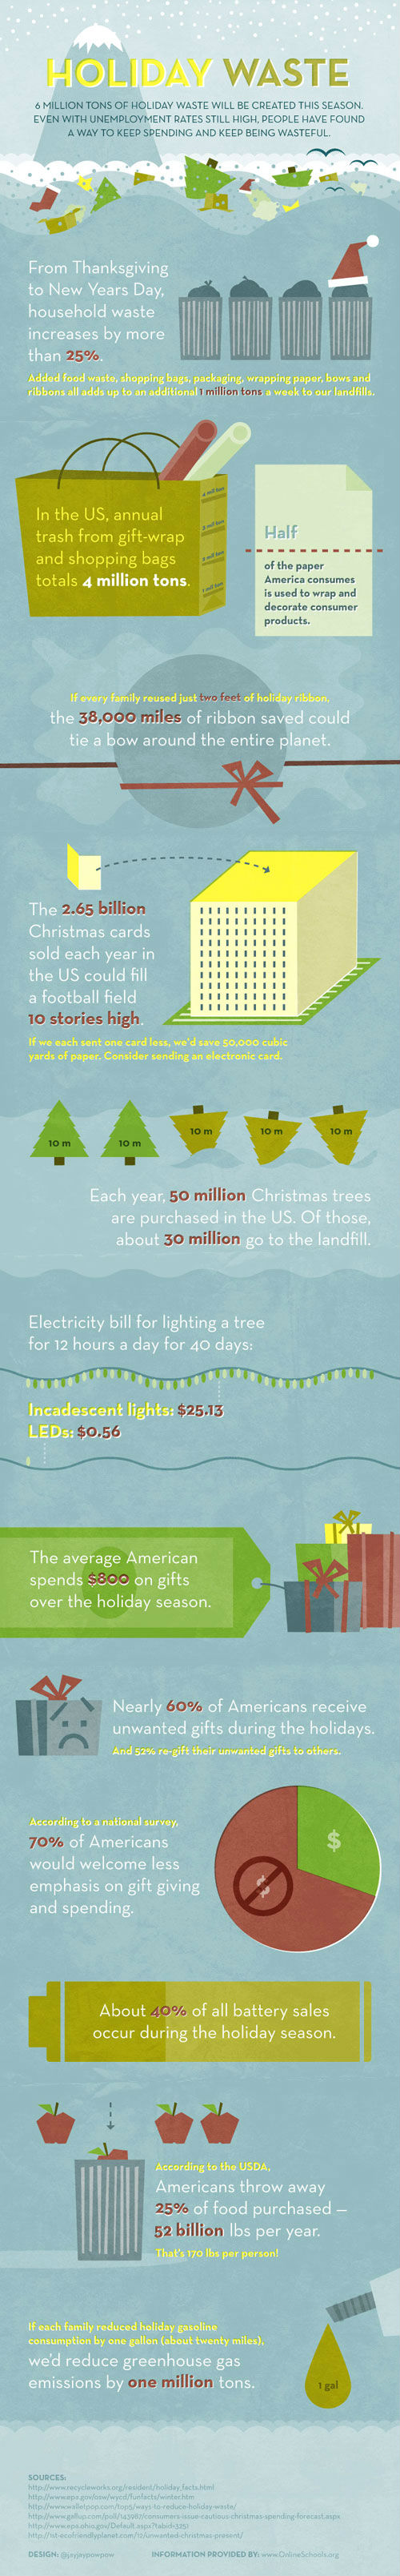 household waste during the holidays